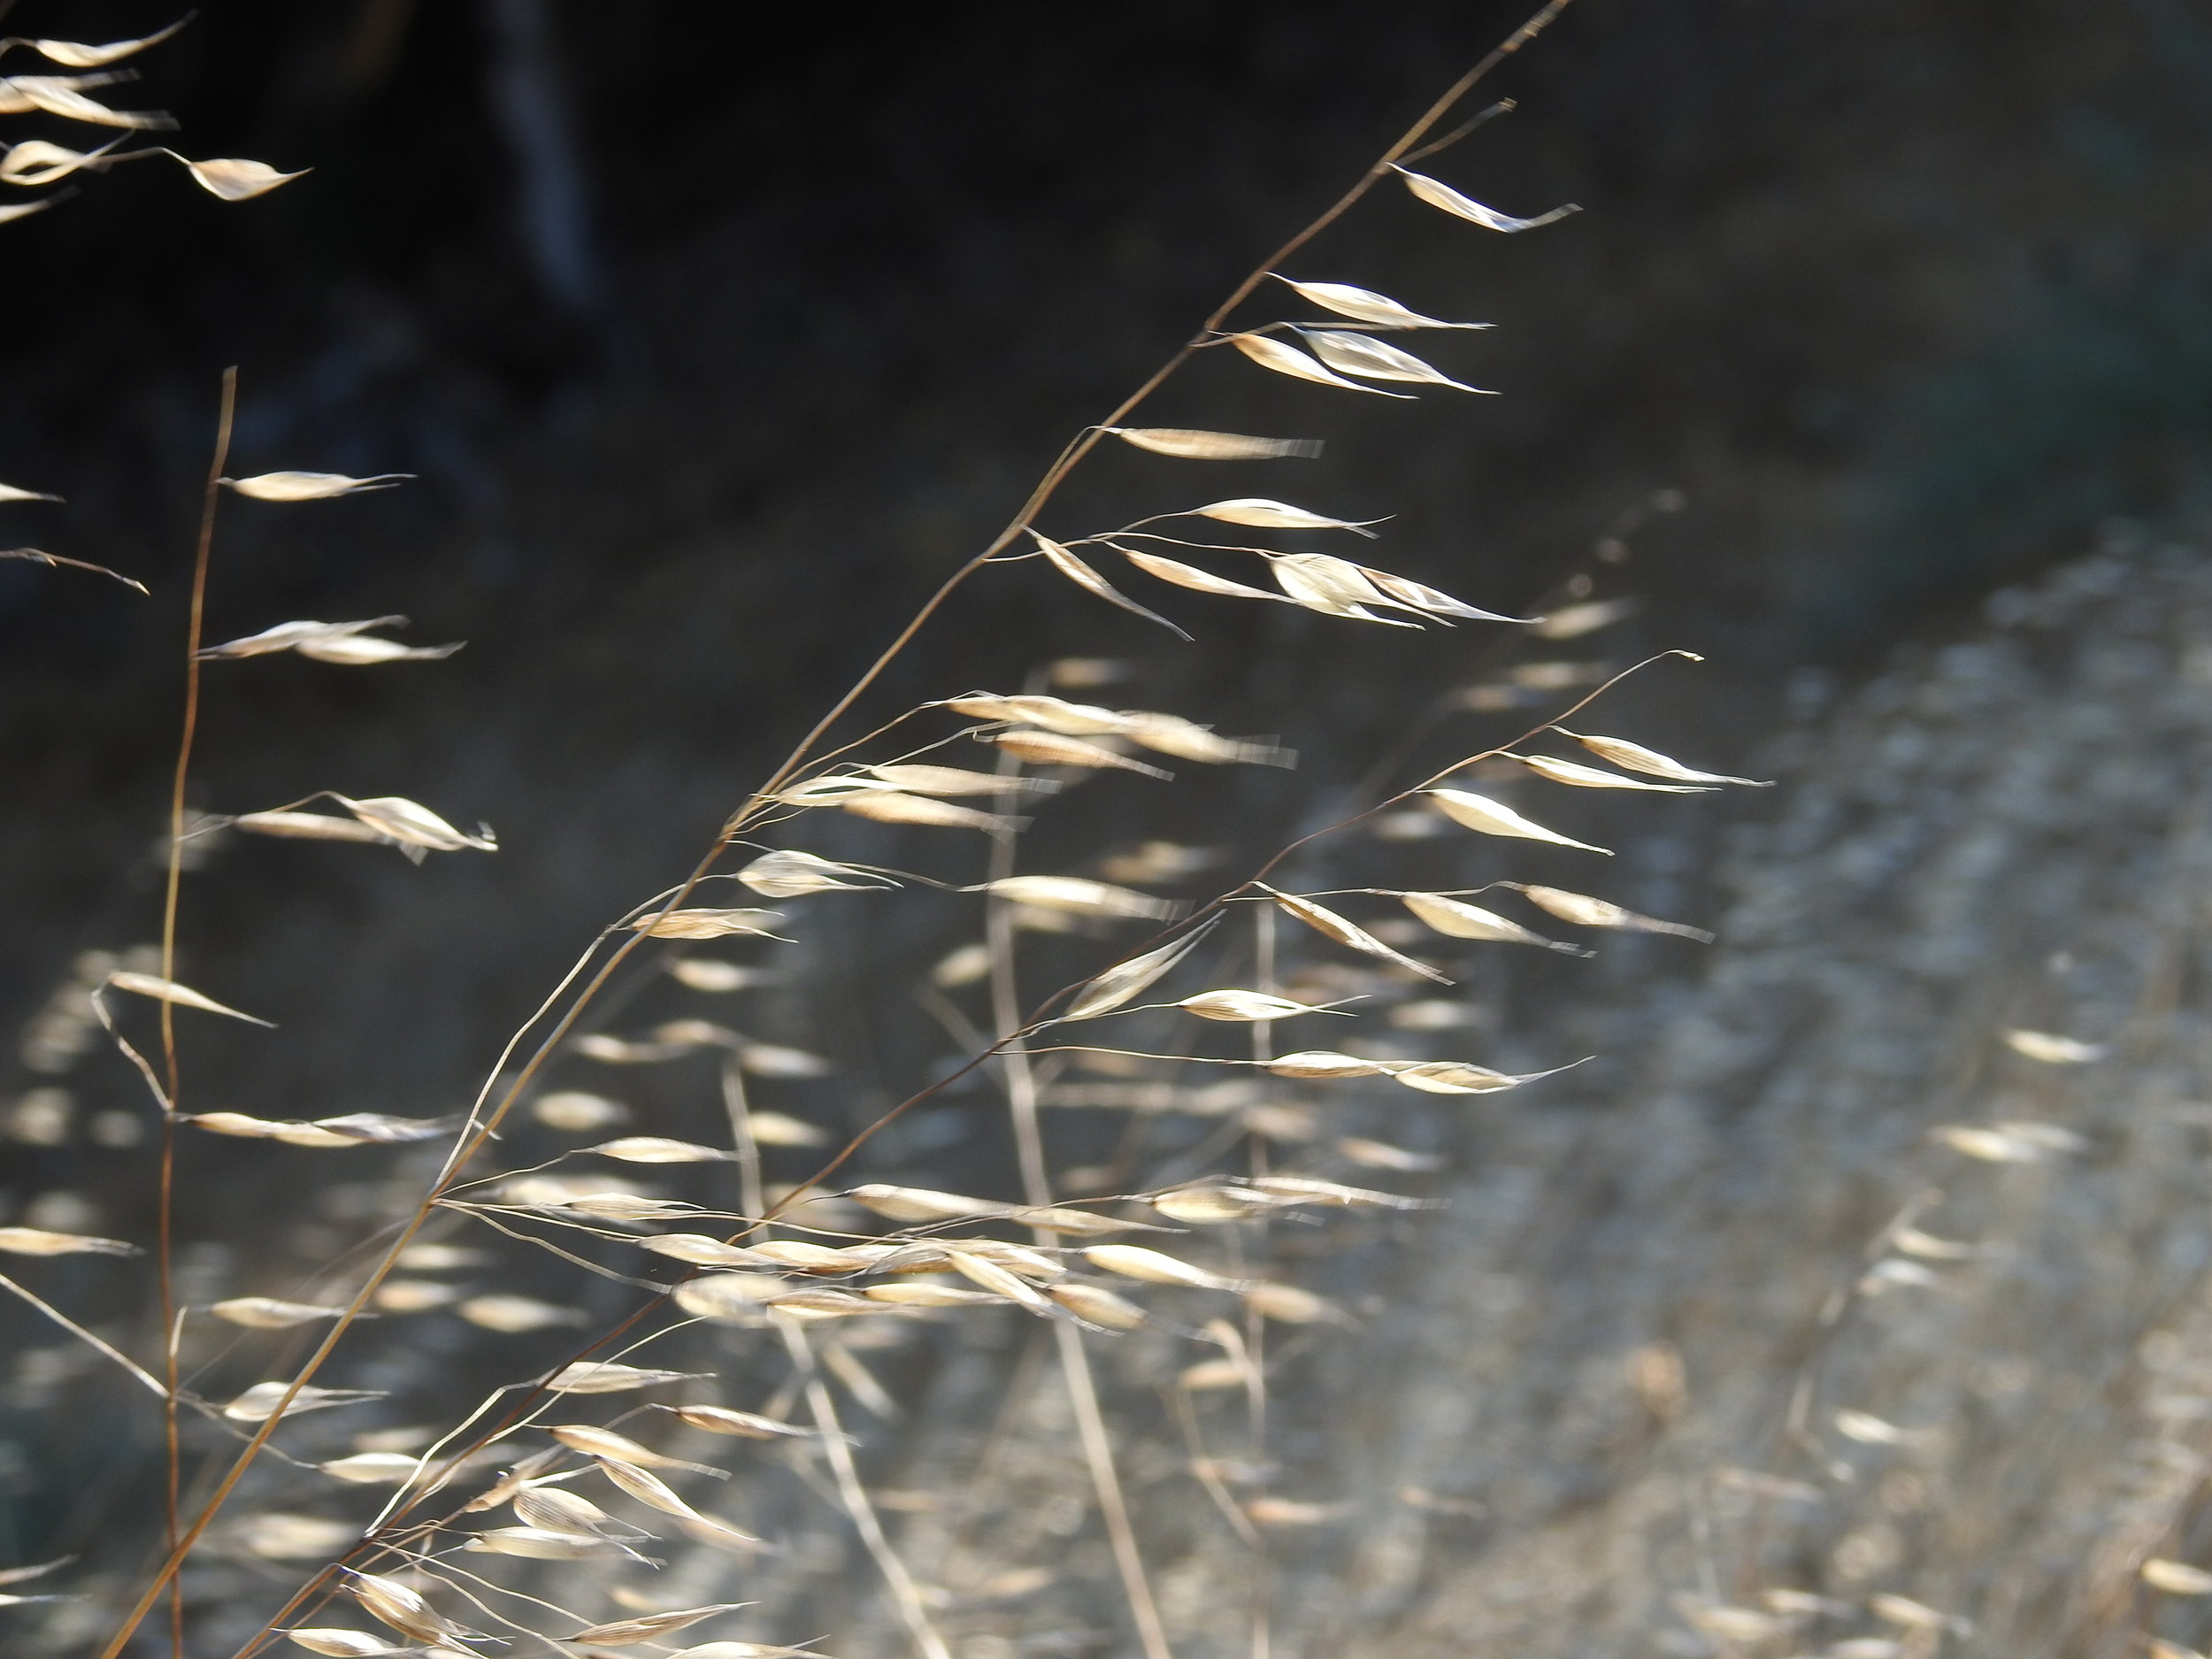 Sun, wind and weeds: seeing the invisible through its effects on matter